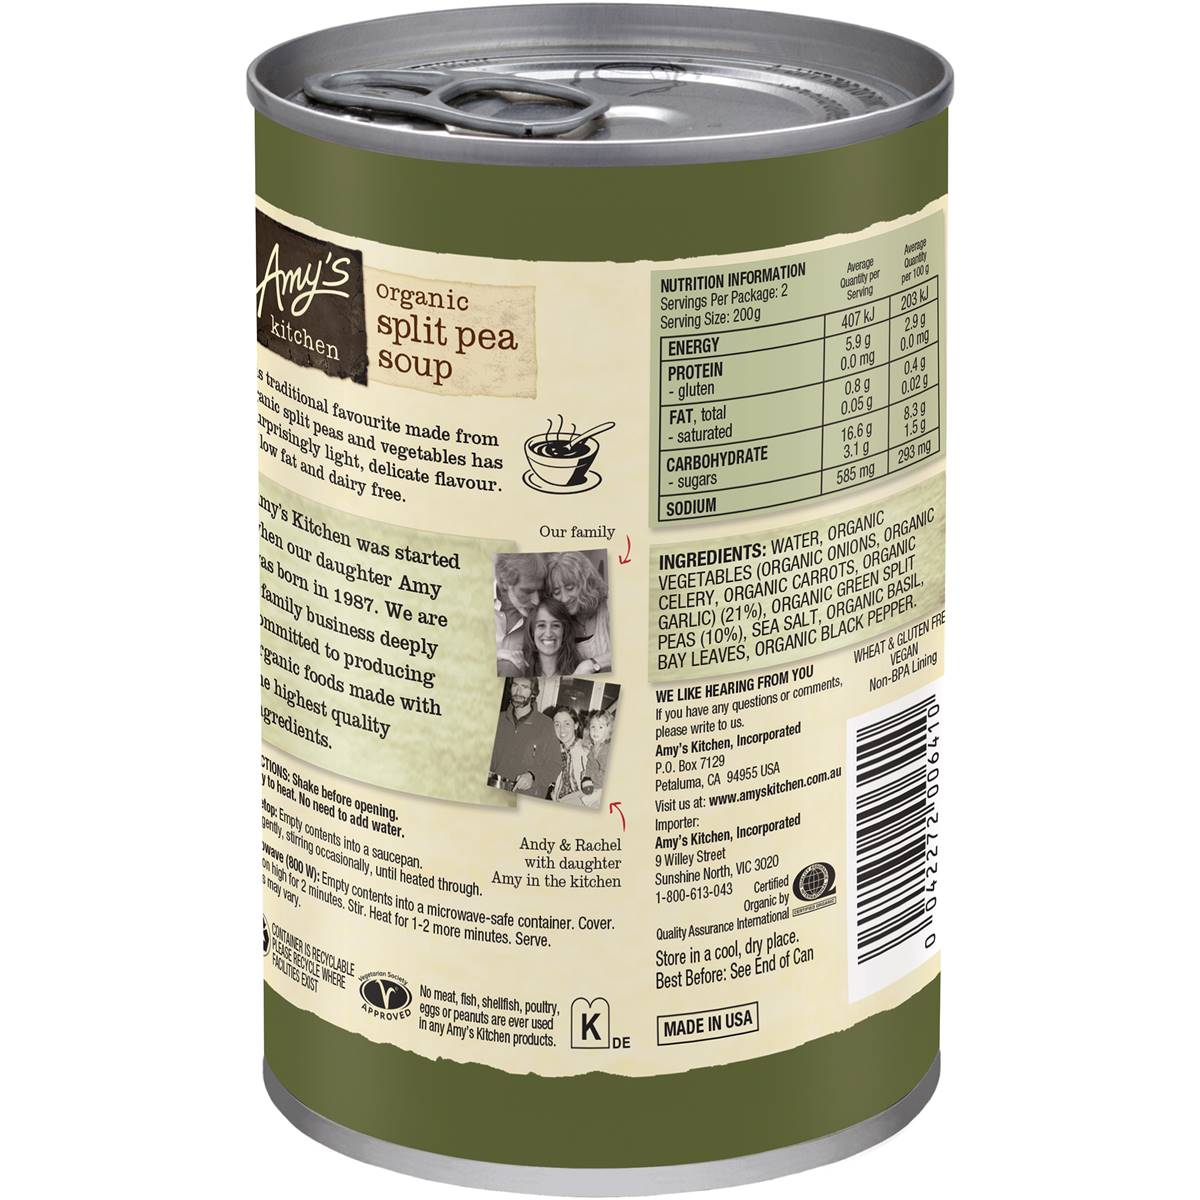 amy's kitchen soup bay window amy 39s split pea 400g woolworths